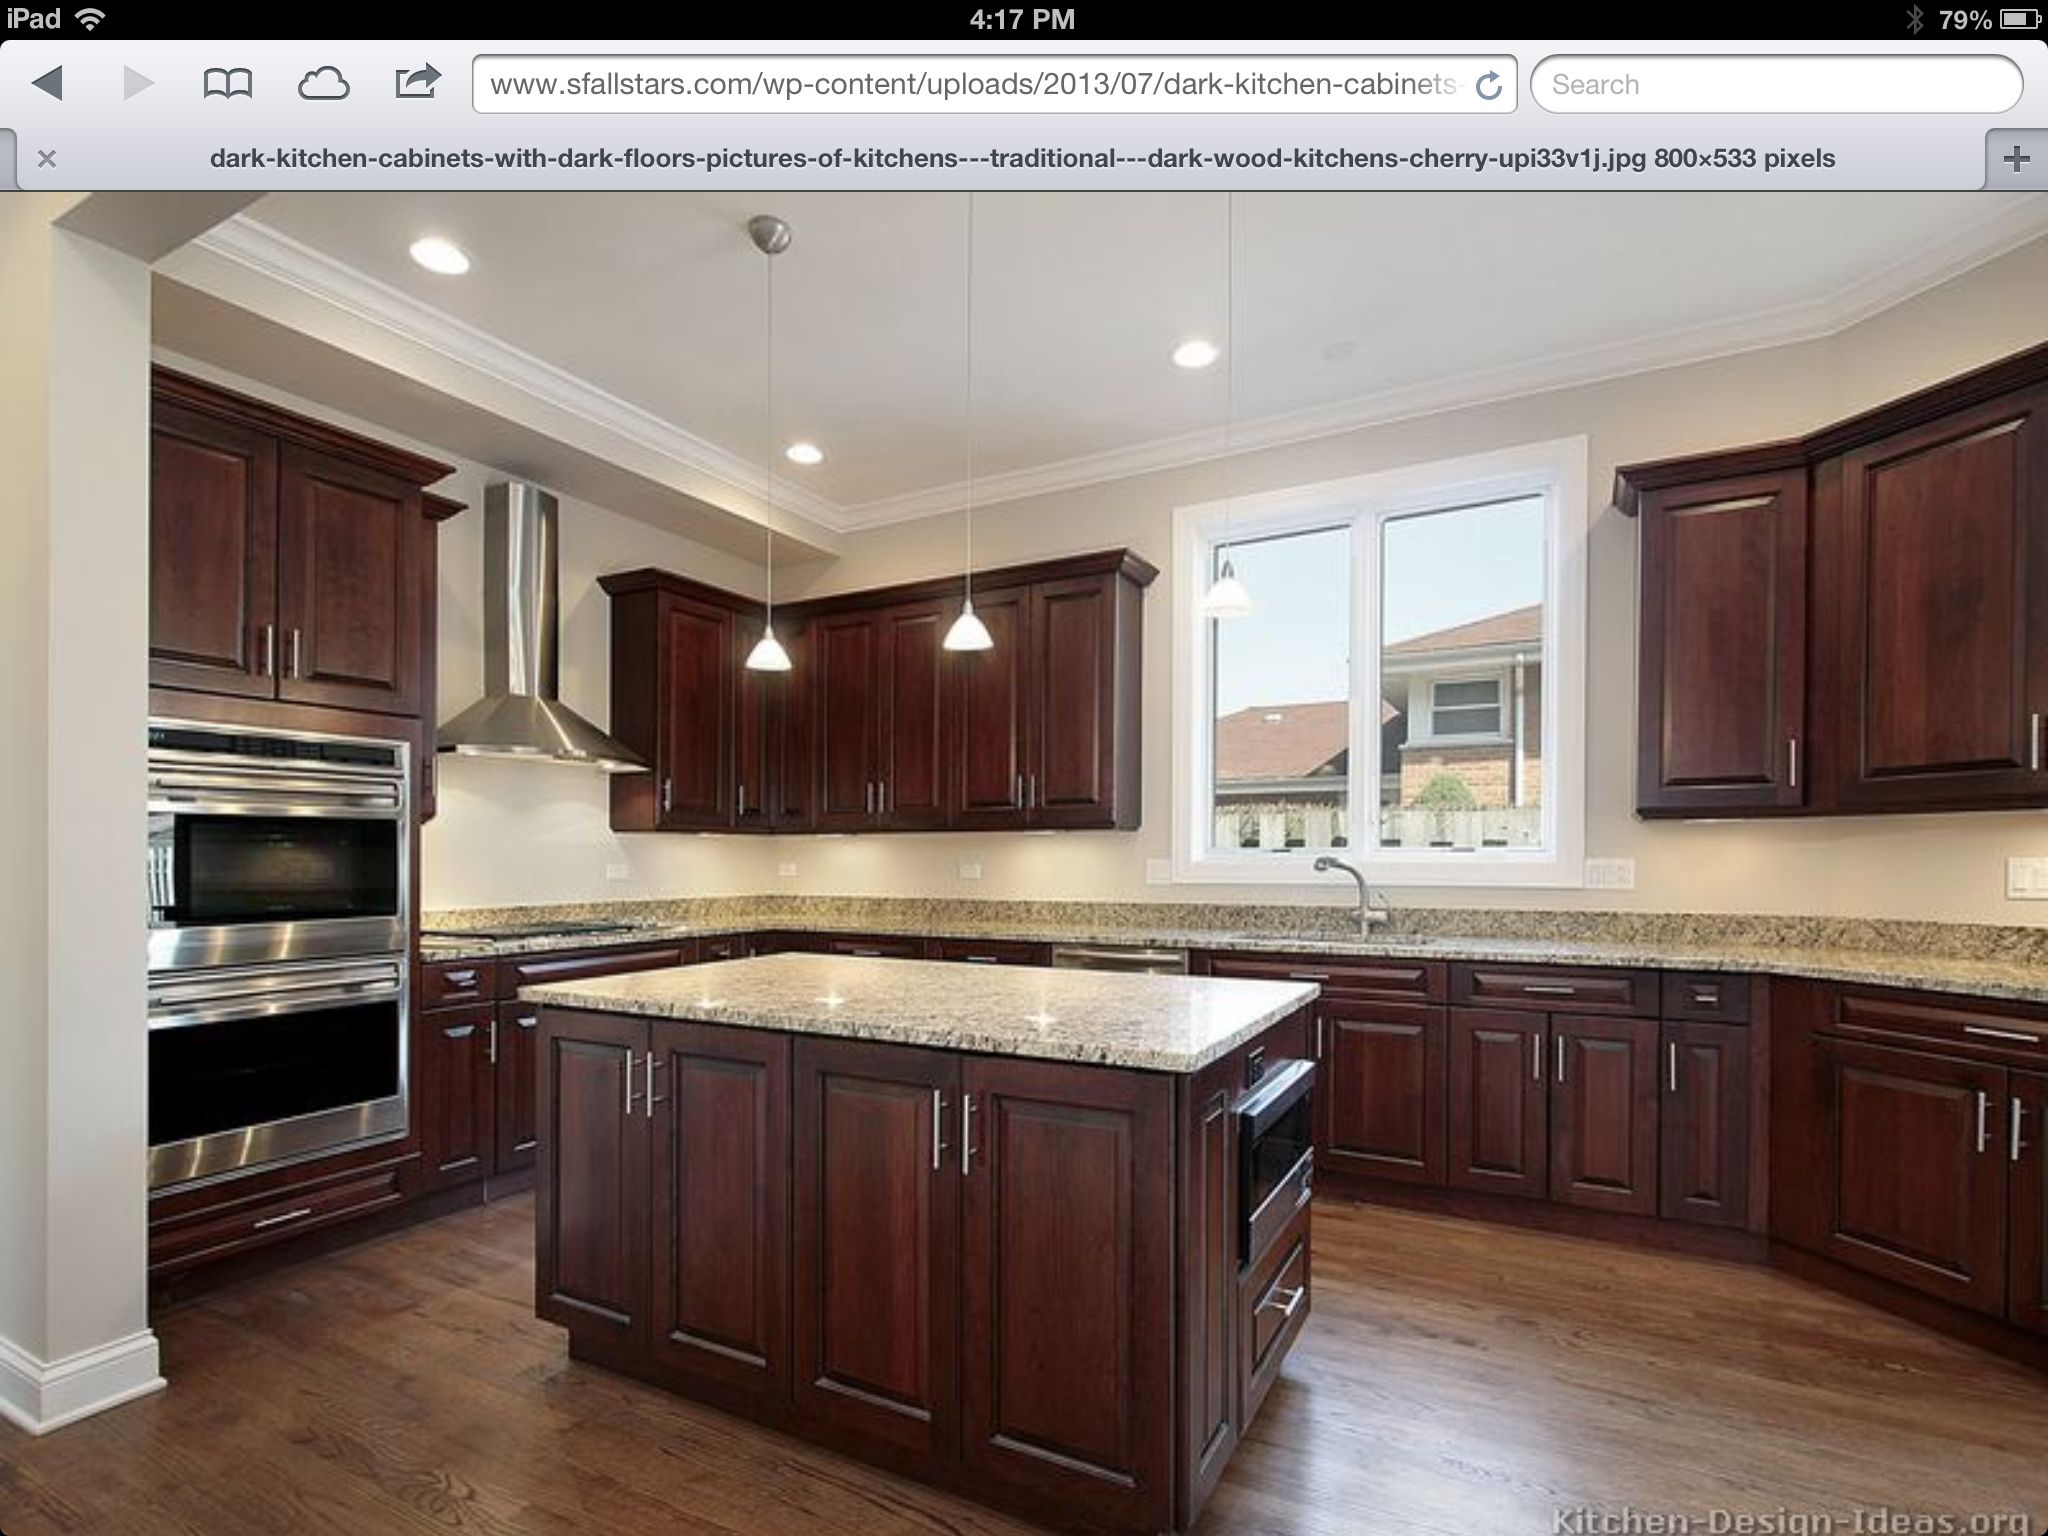 Dark Wood Cabinets In Kitchen Hickory Floors Cherry Cabinets Home Ideas In 2019